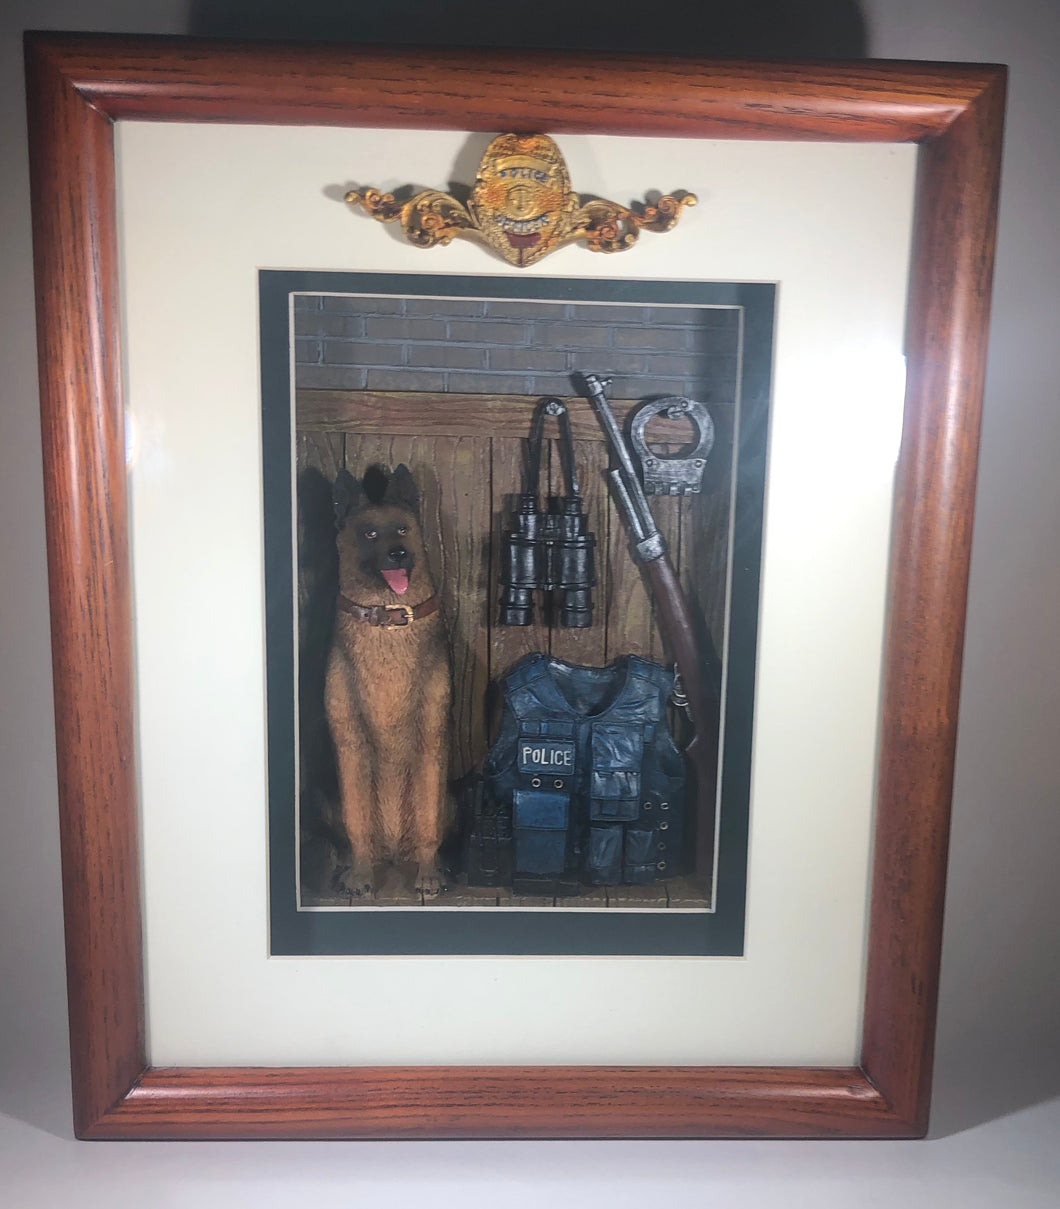 German Shephard K9 Unit Shadow Box Collectible